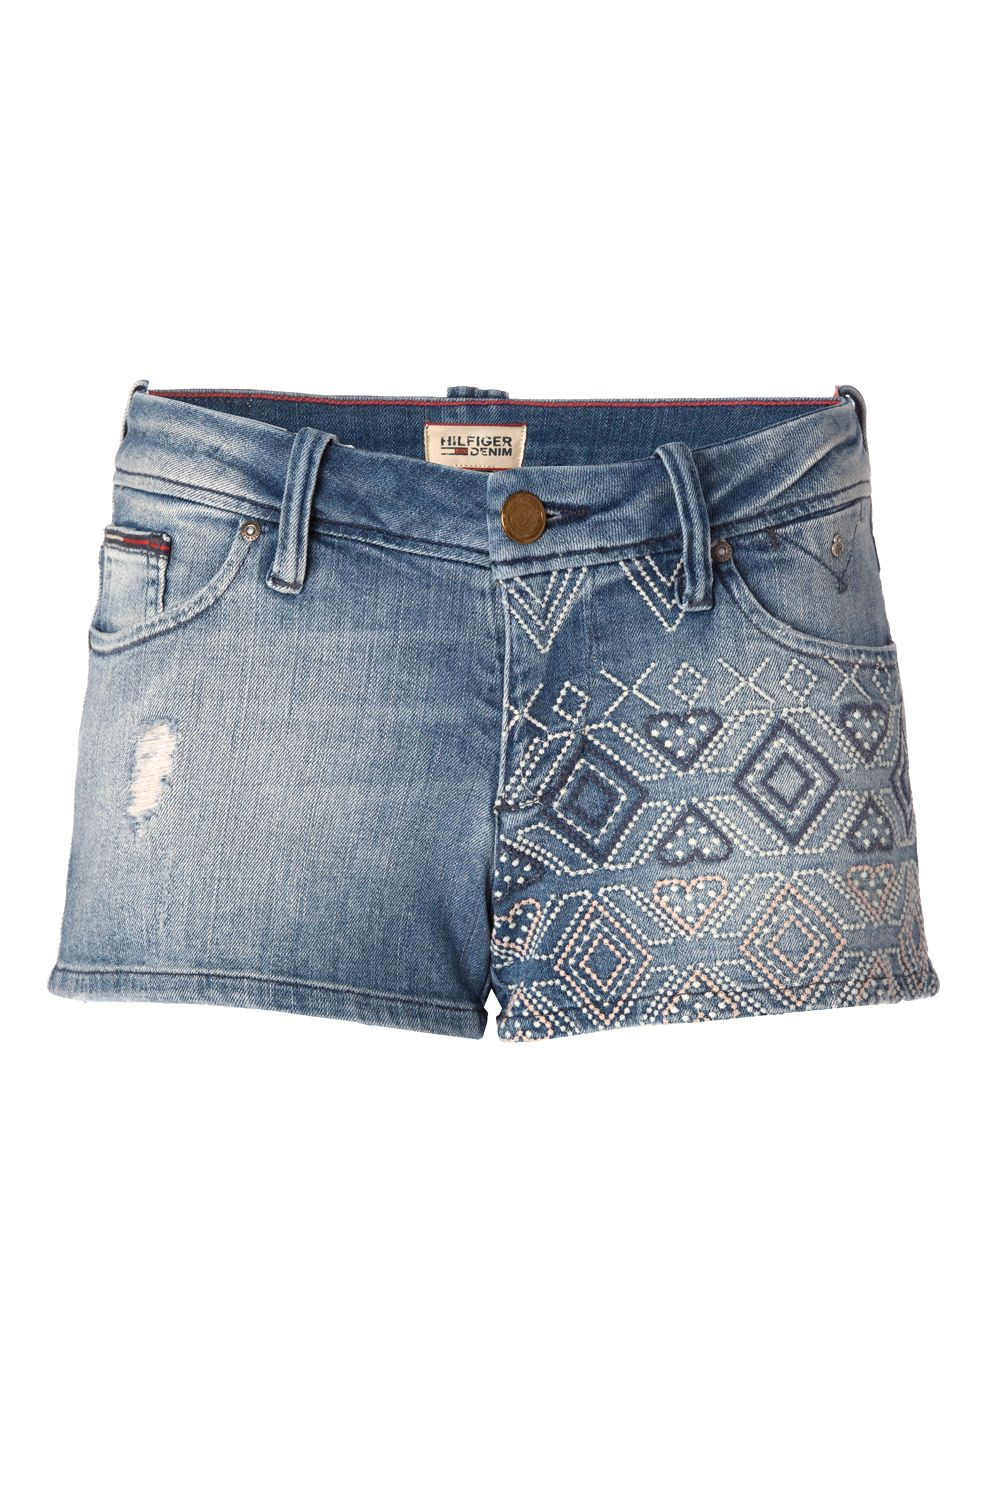 Rosie denim shorts